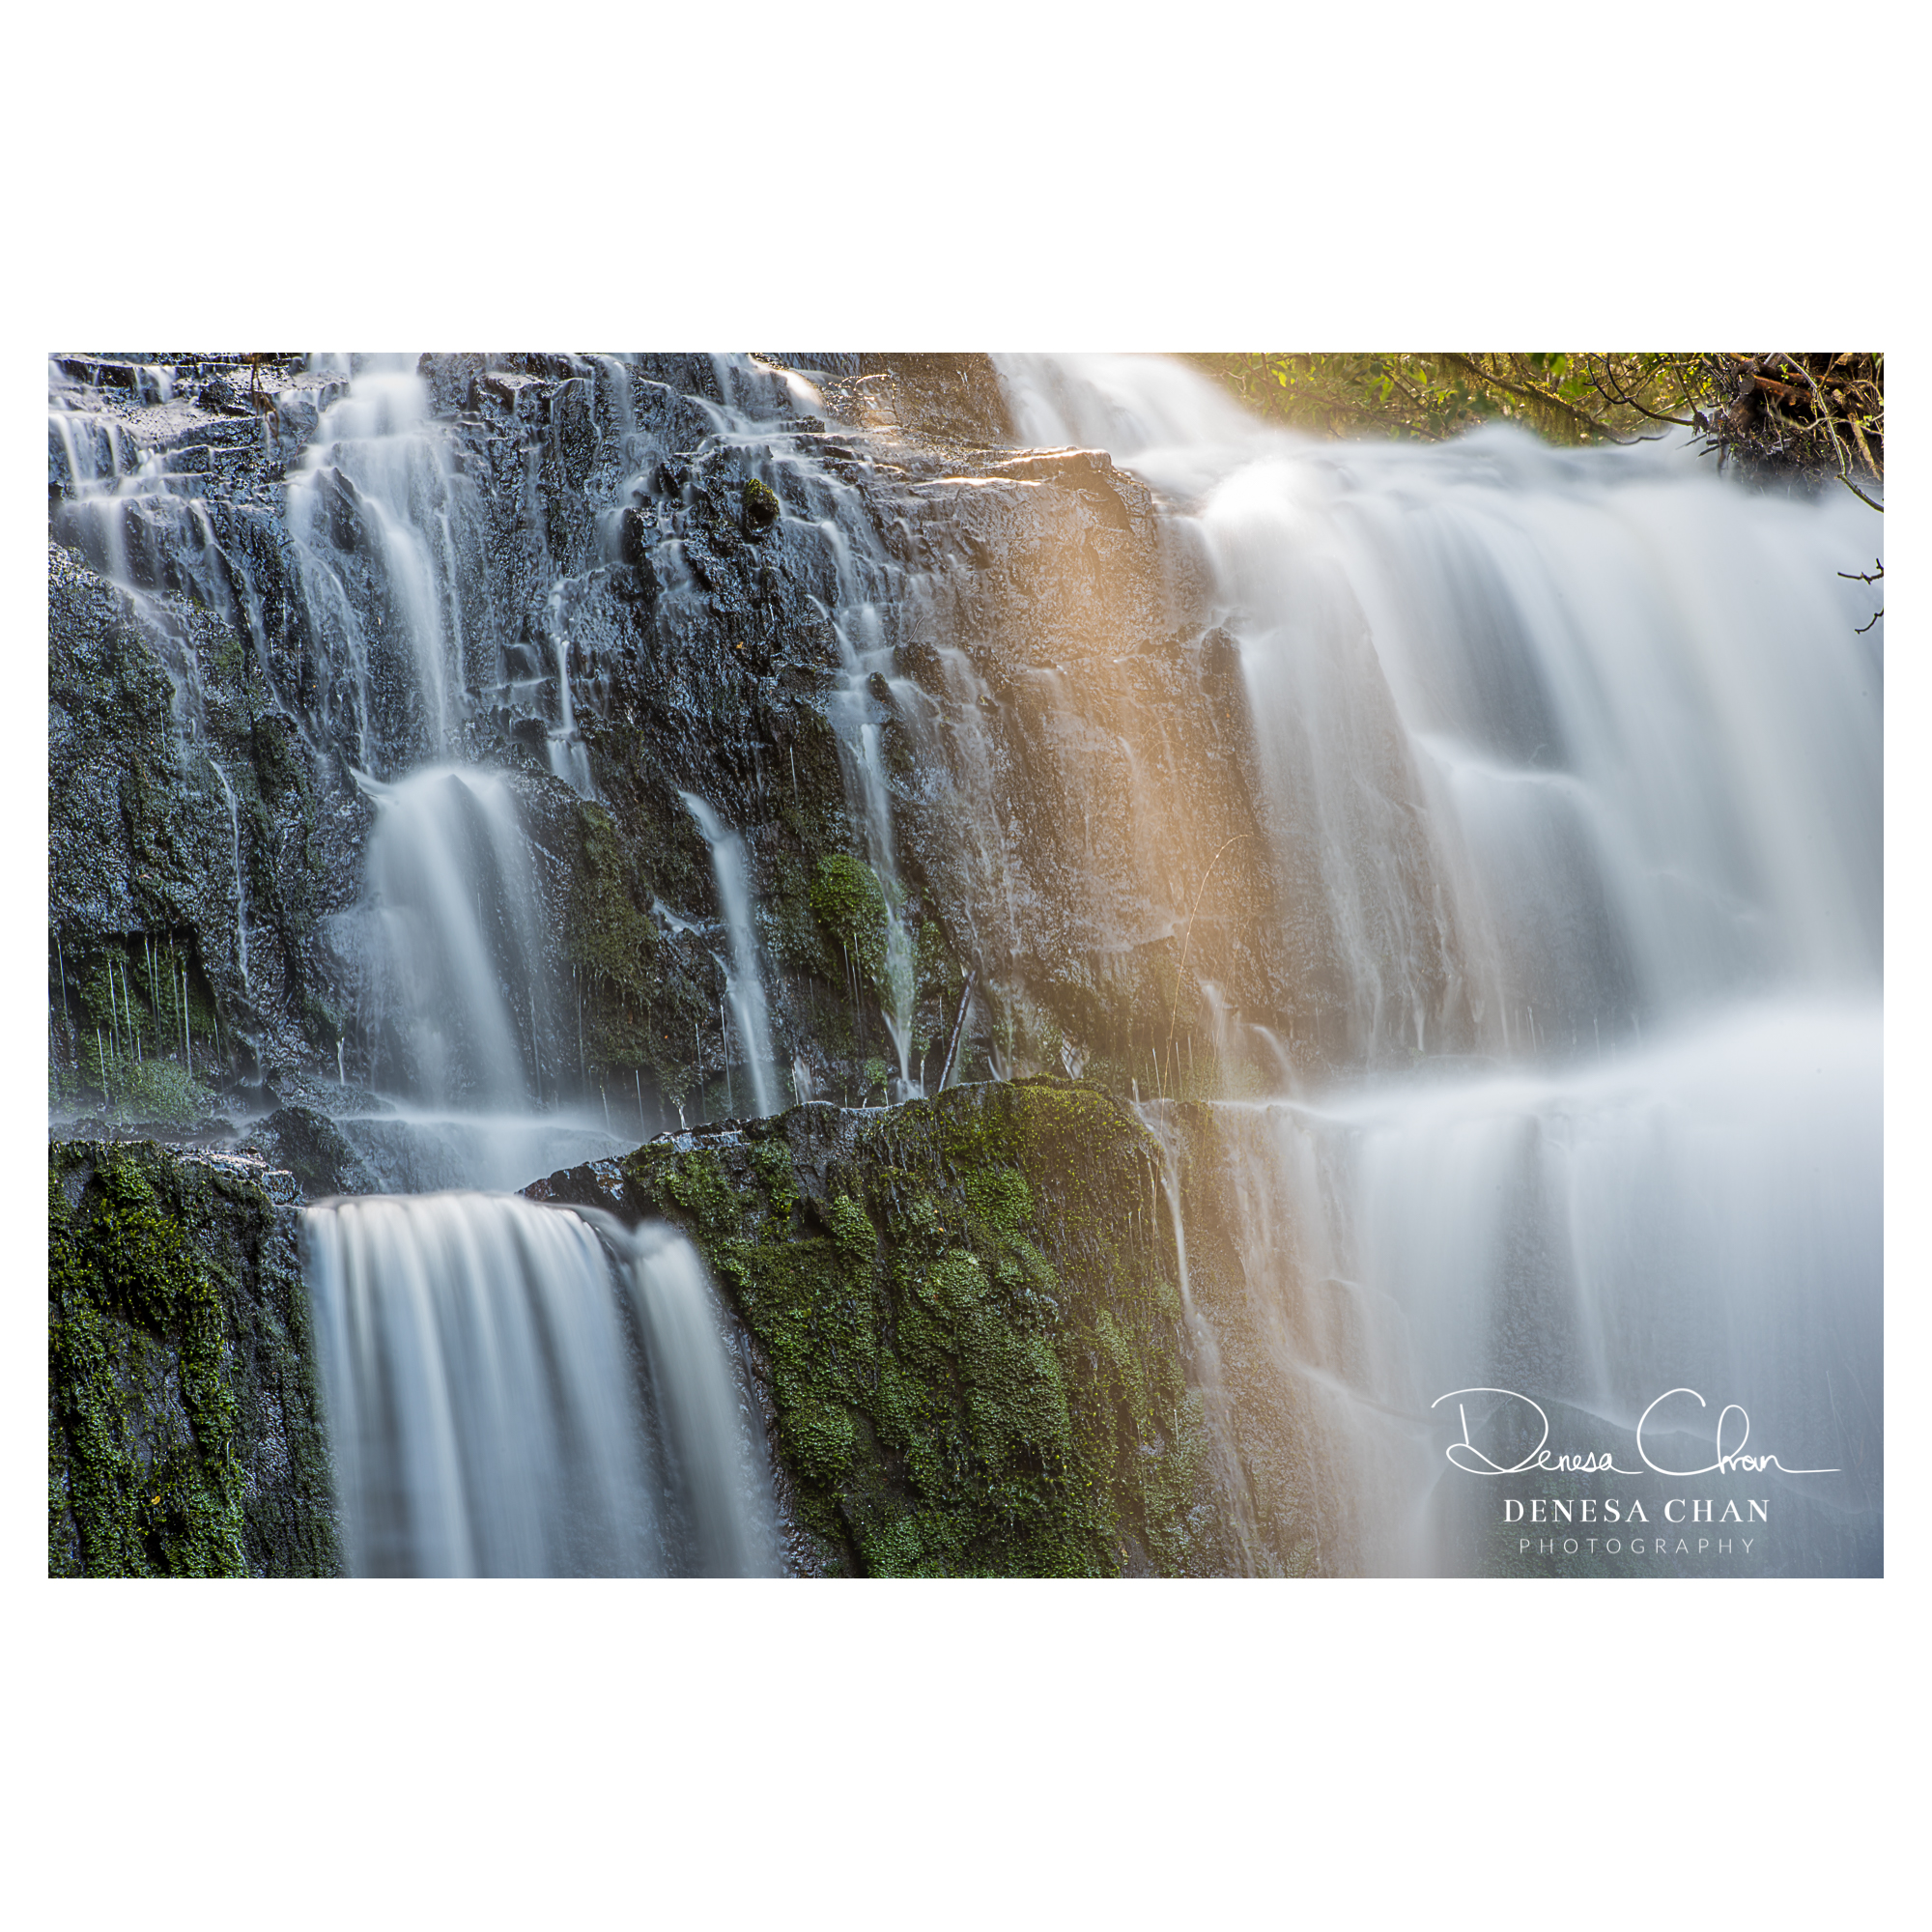 Parakaunui_Falls_Catlins_South_Island_New_Zealand_©_Denesa_Chan_Photography_2815